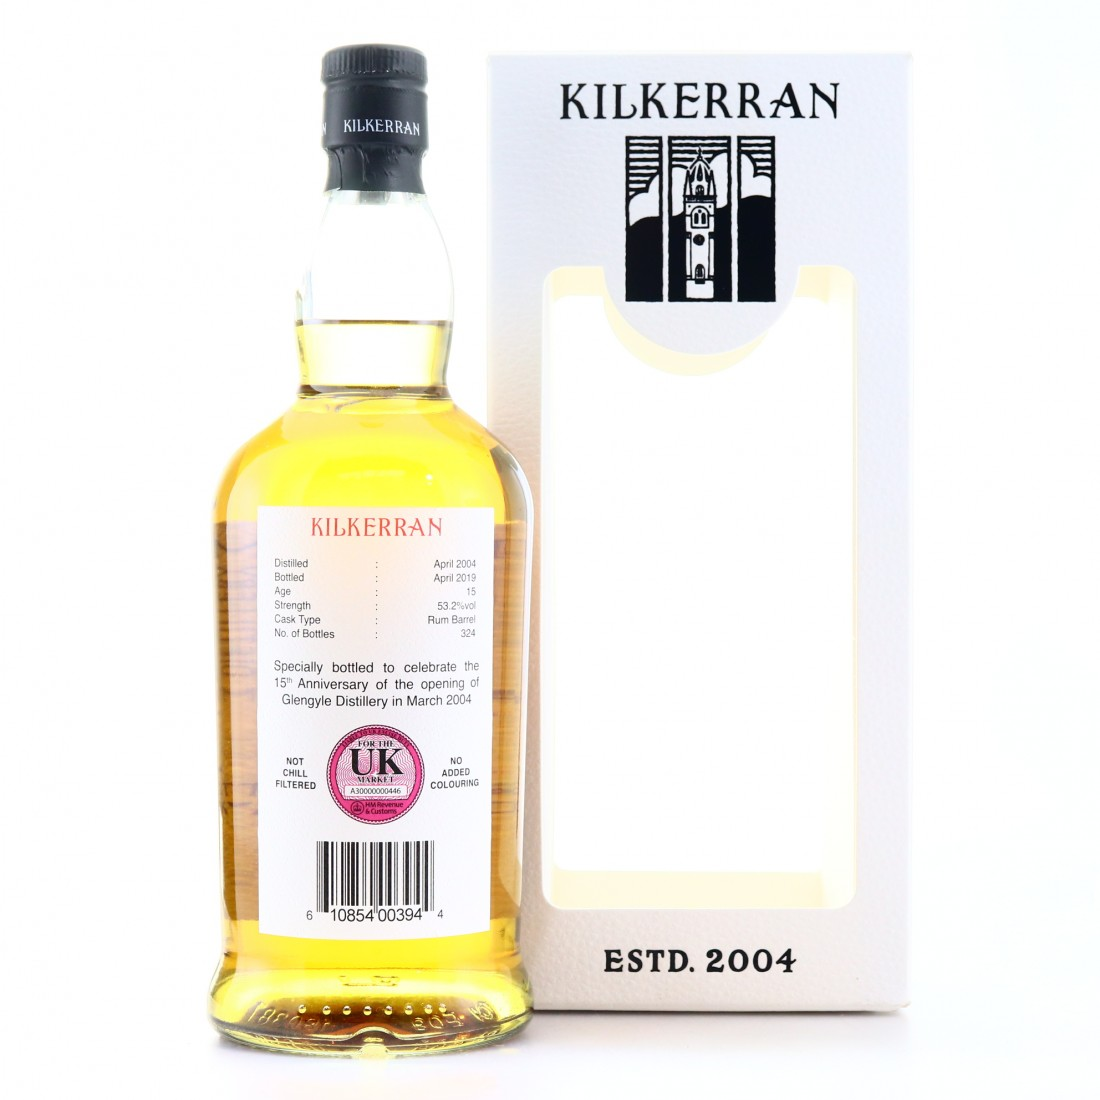 Kilkerran 2004 Single Rum Cask 15 Year Old / 15th Anniversary